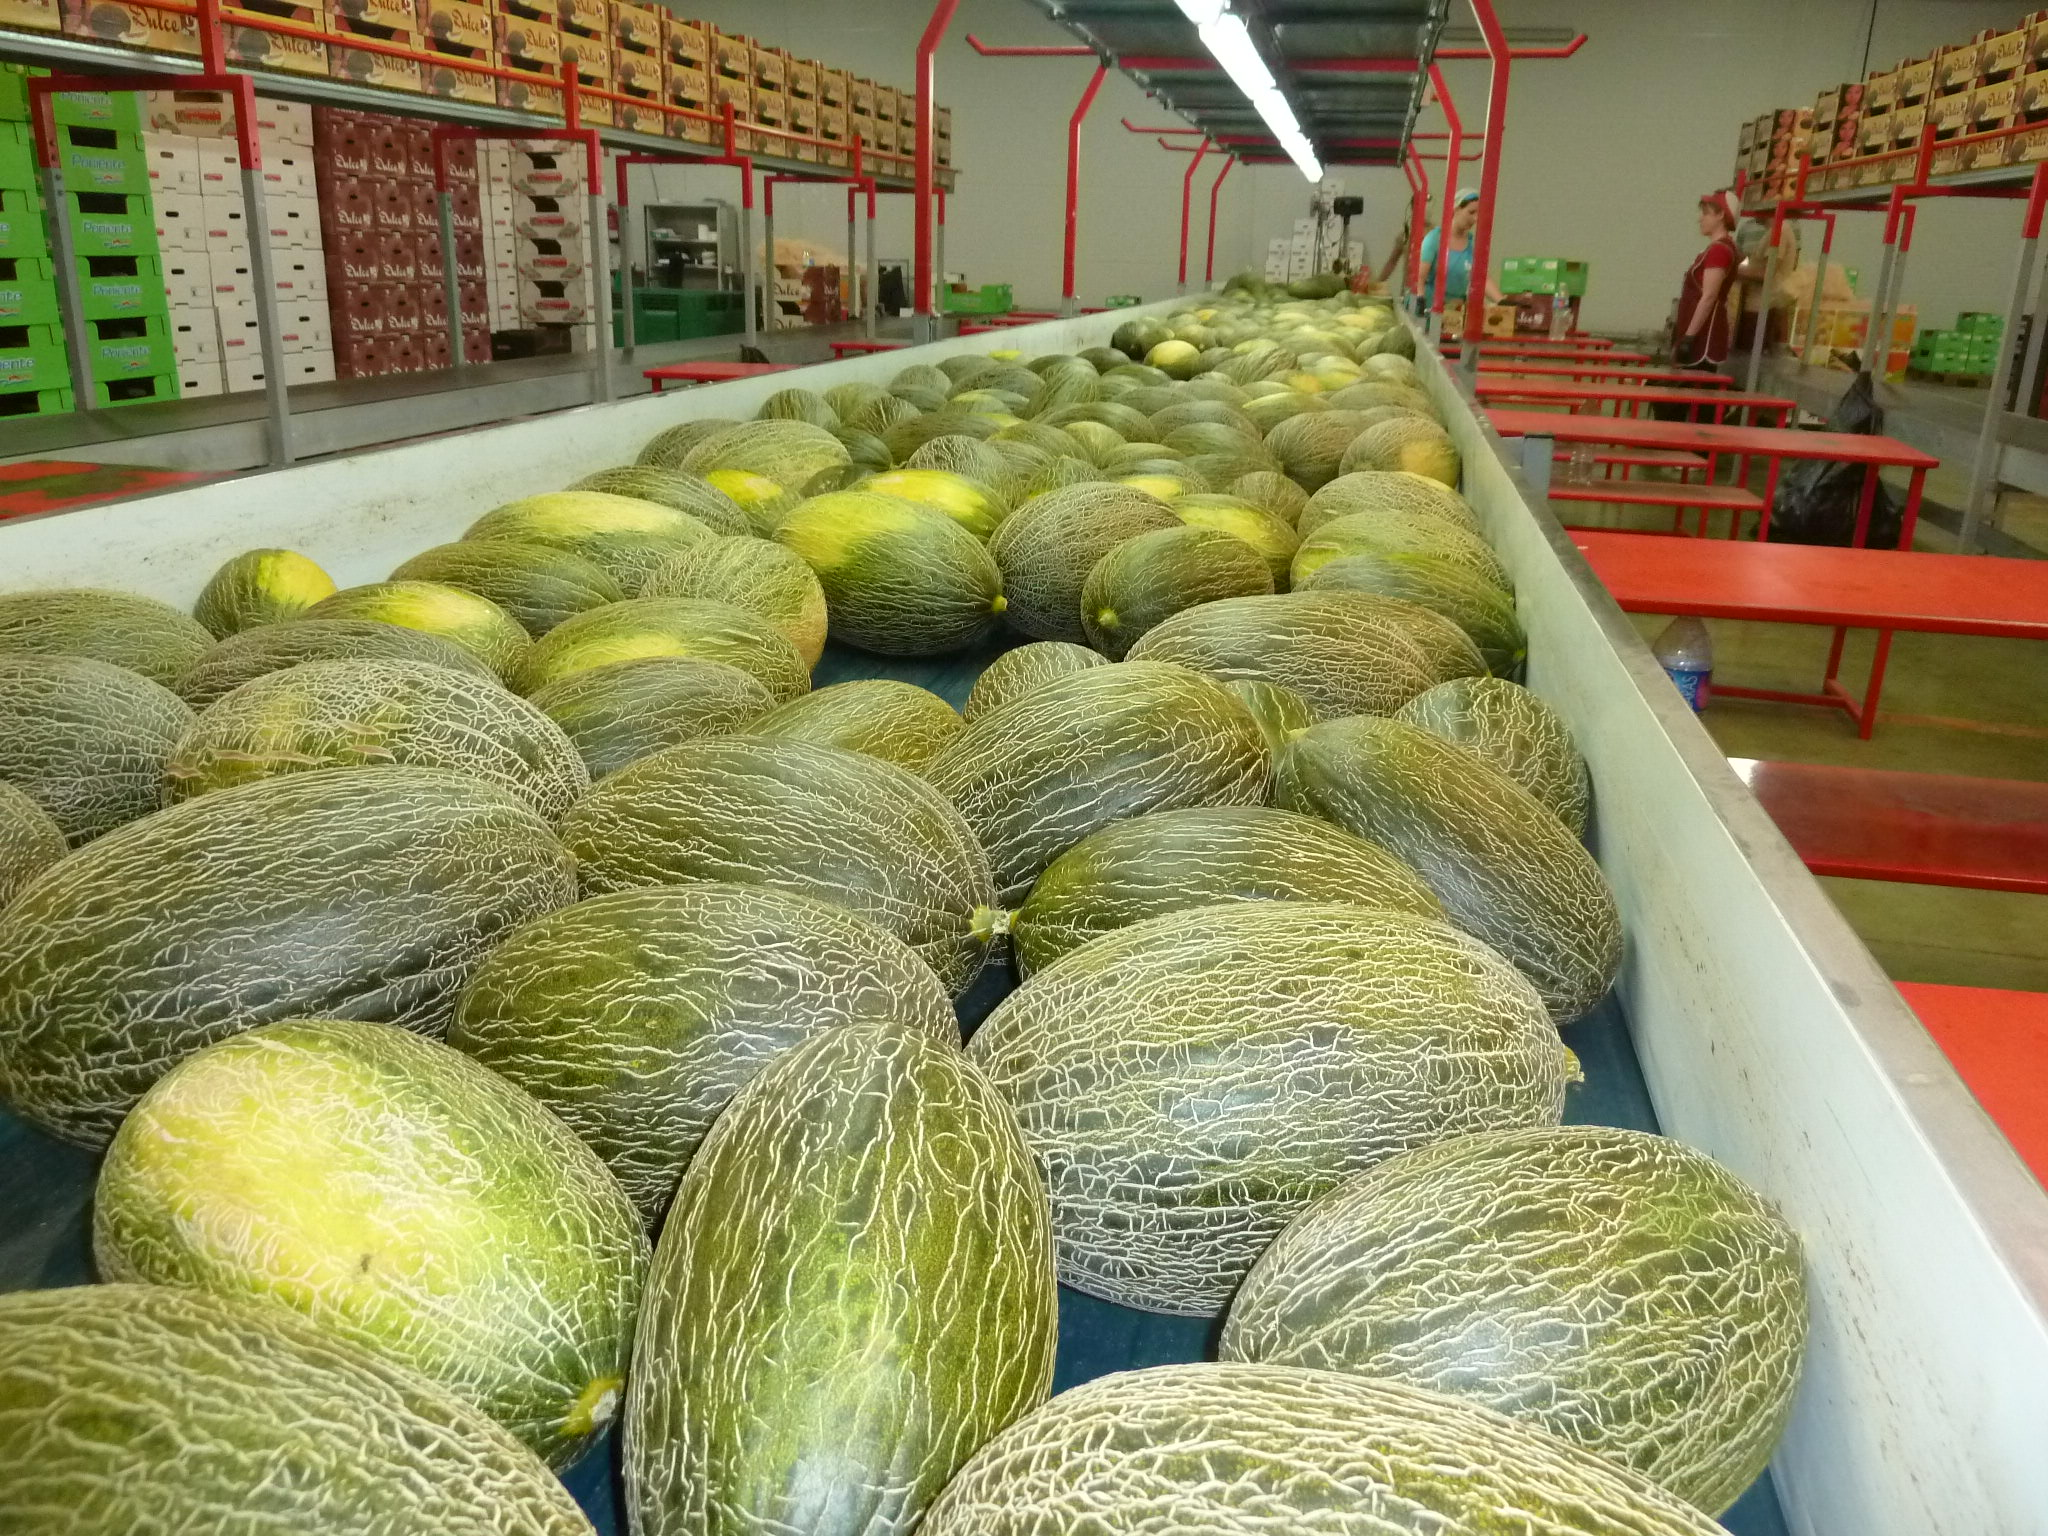 Once again this year, Vegacañada's Christmas melons will be reaching the markets under the prestigious 'Dulce de Vega' brand, which also represents its black and white watermelons, both traditional and seedless, as well as the Fashion watermelon, the prestigious brand that the company trades as a member of the Fashion Group Association (AGF).